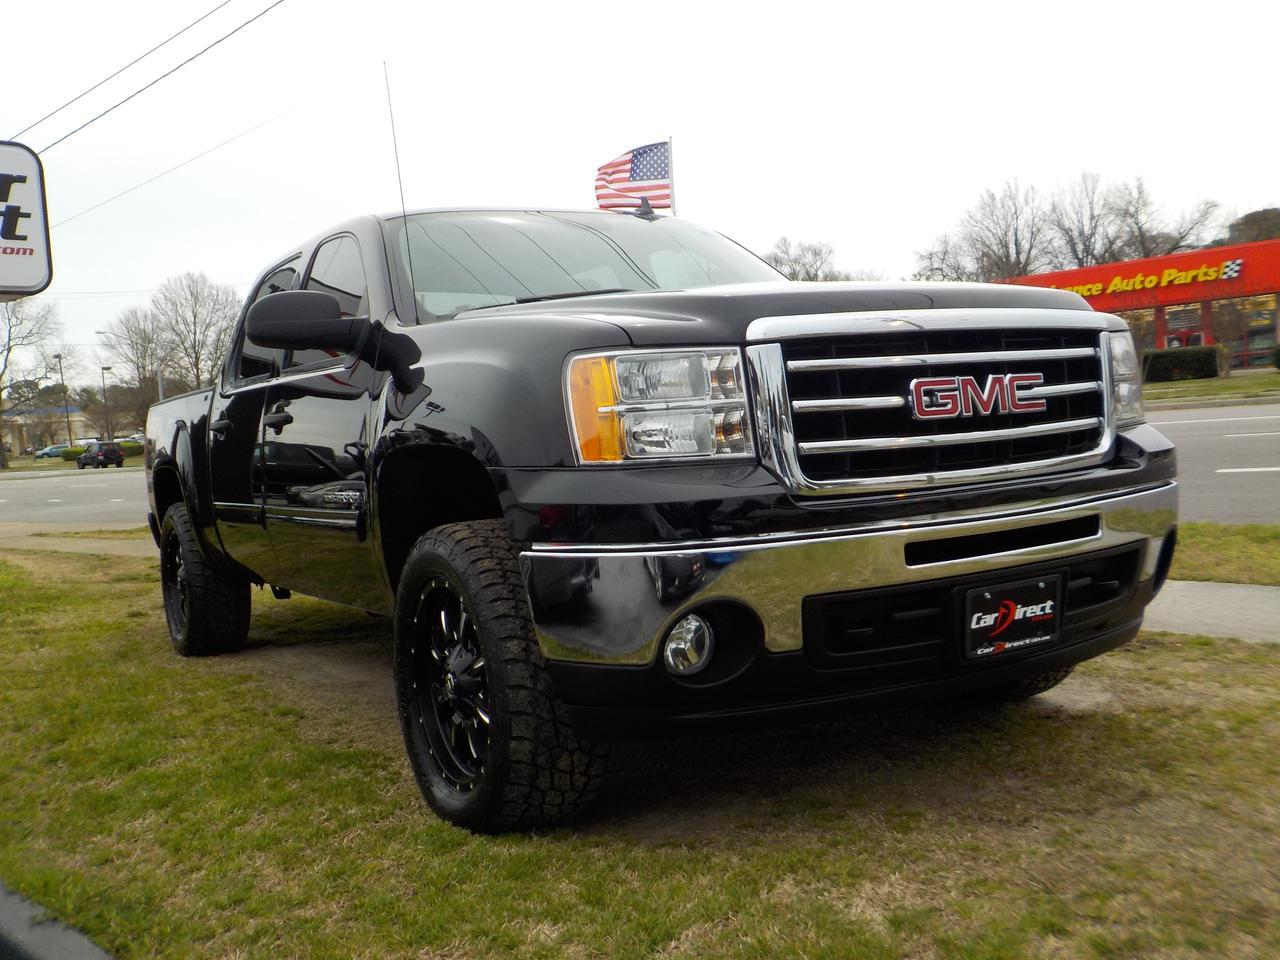 2013 GMC SIERRA SLE Z71 CREW CAB 4X4, WARRANTY, BACKUP CAMERA, PARKING SENSORS, REMOTE START, ONSTAR, FUEL RIMS, TOW Virginia Beach VA